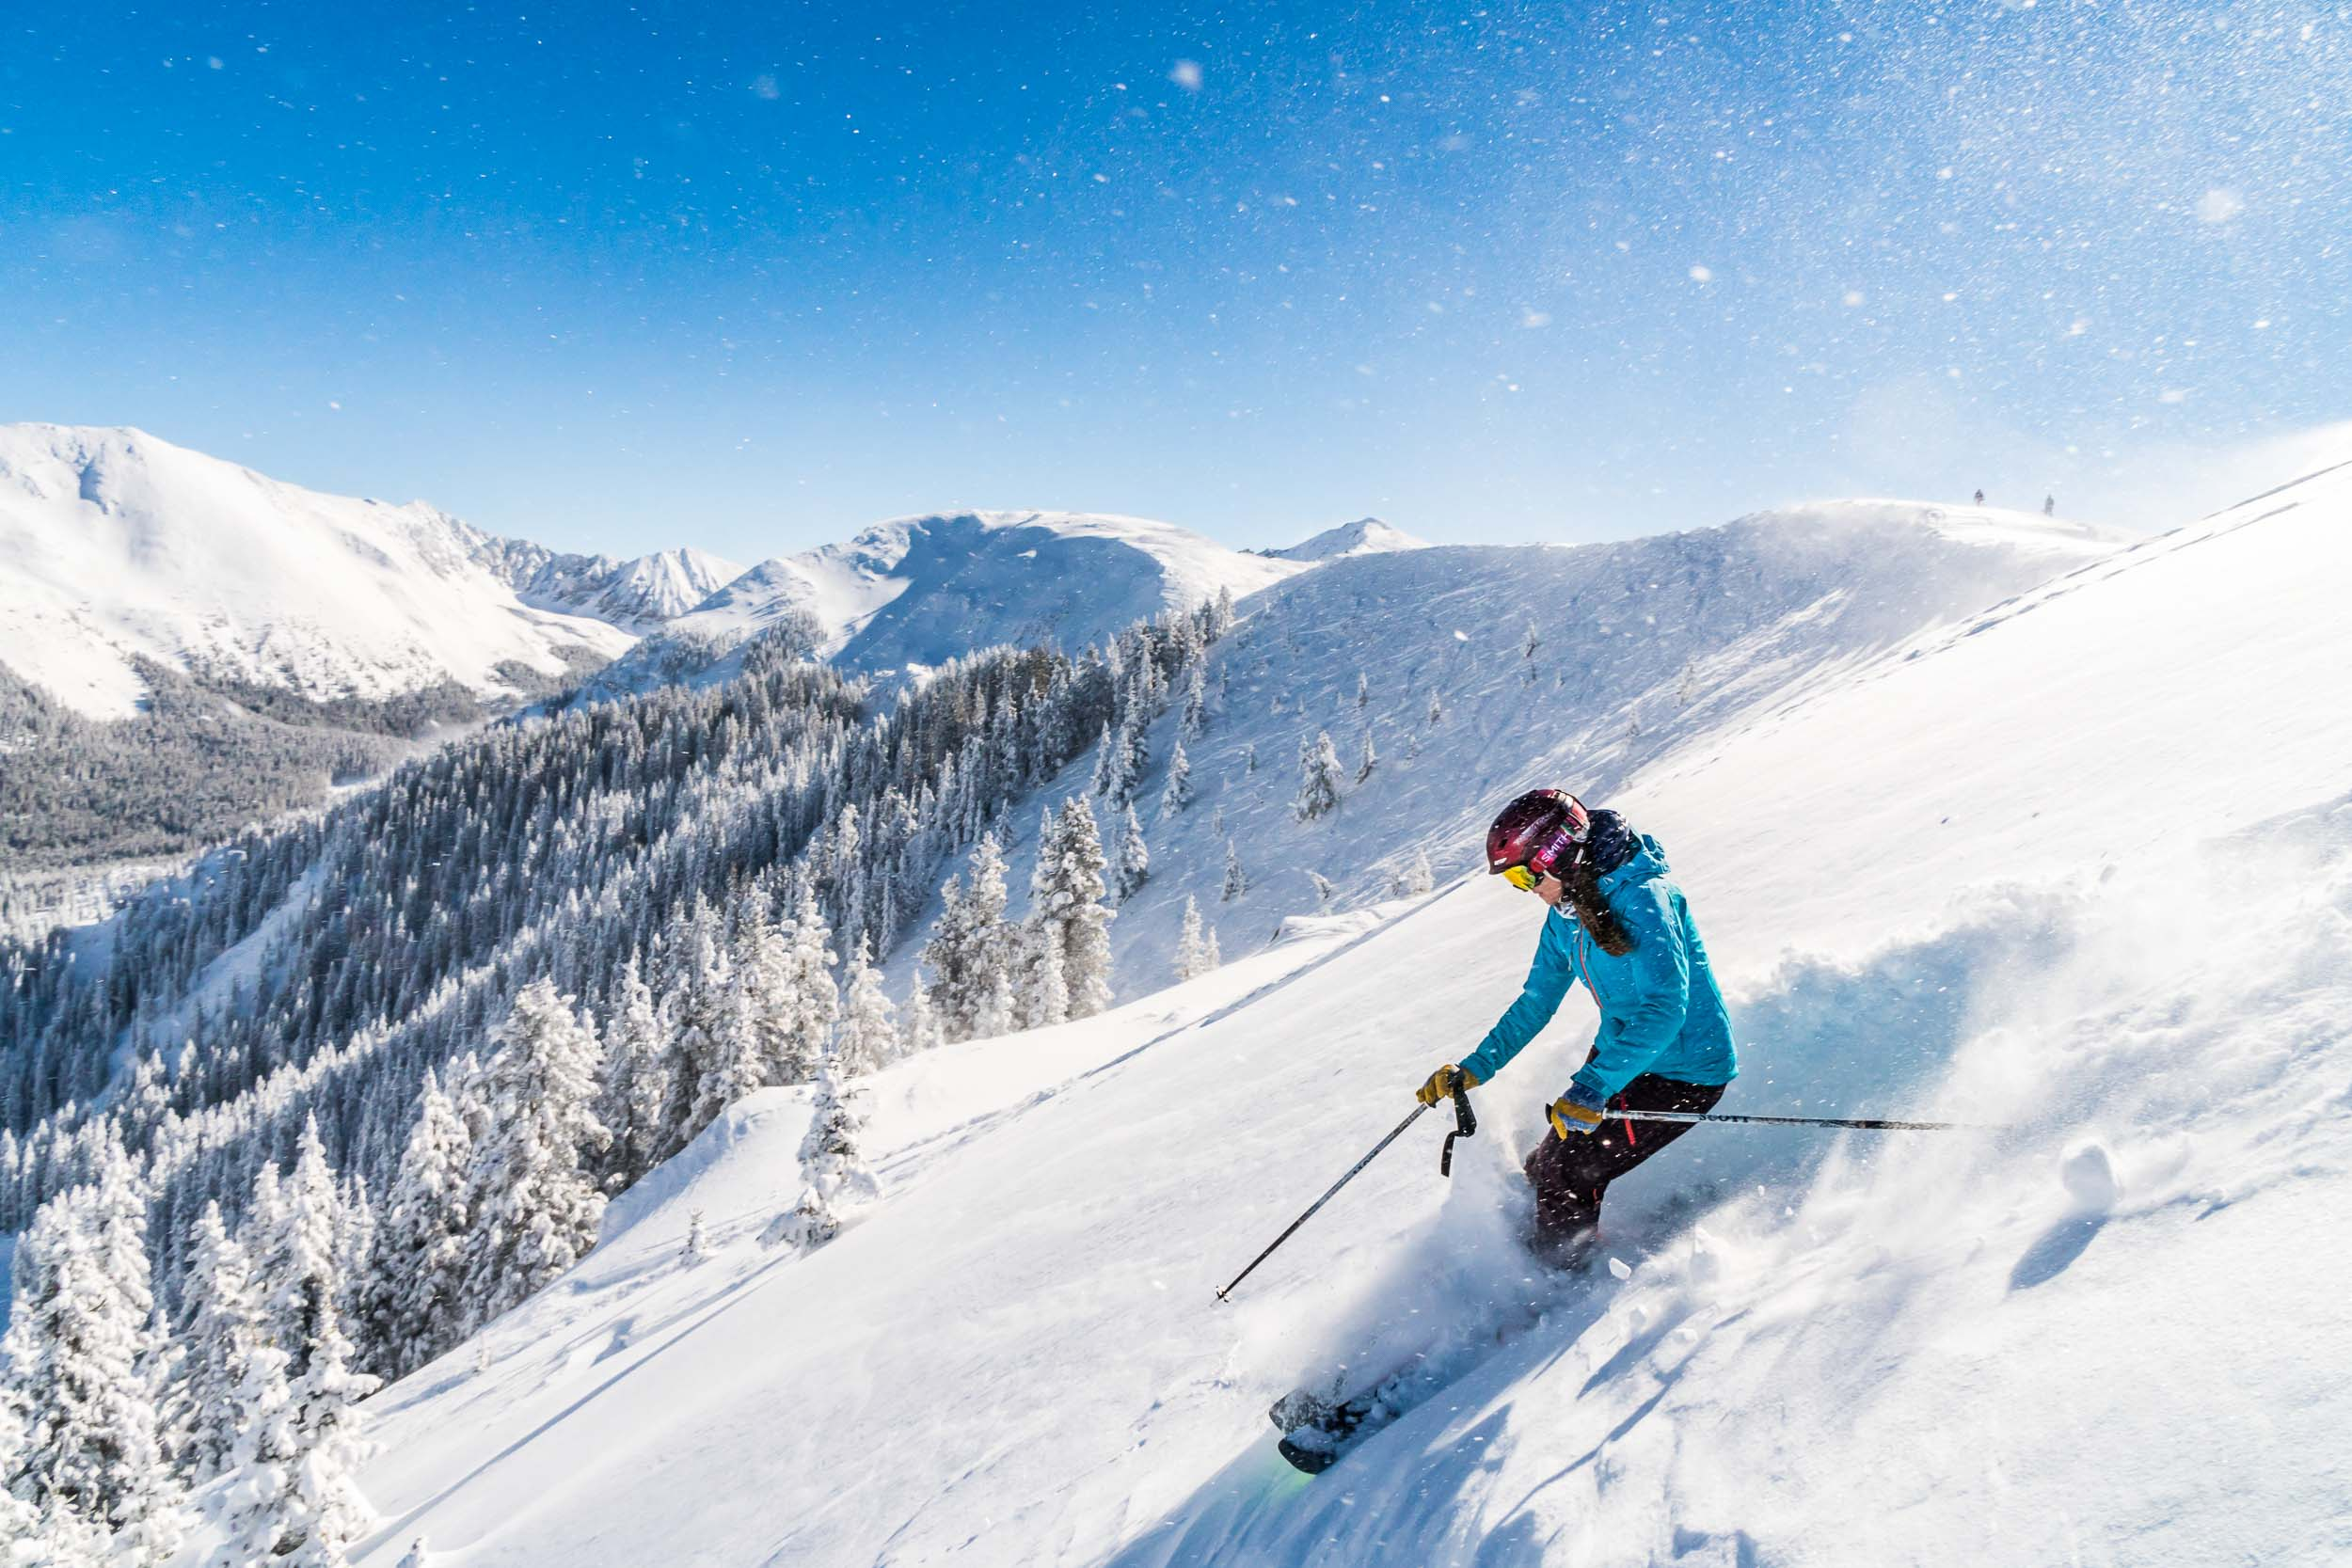 Taos New Mexico Photographers Michael DeYoung Powder Ski